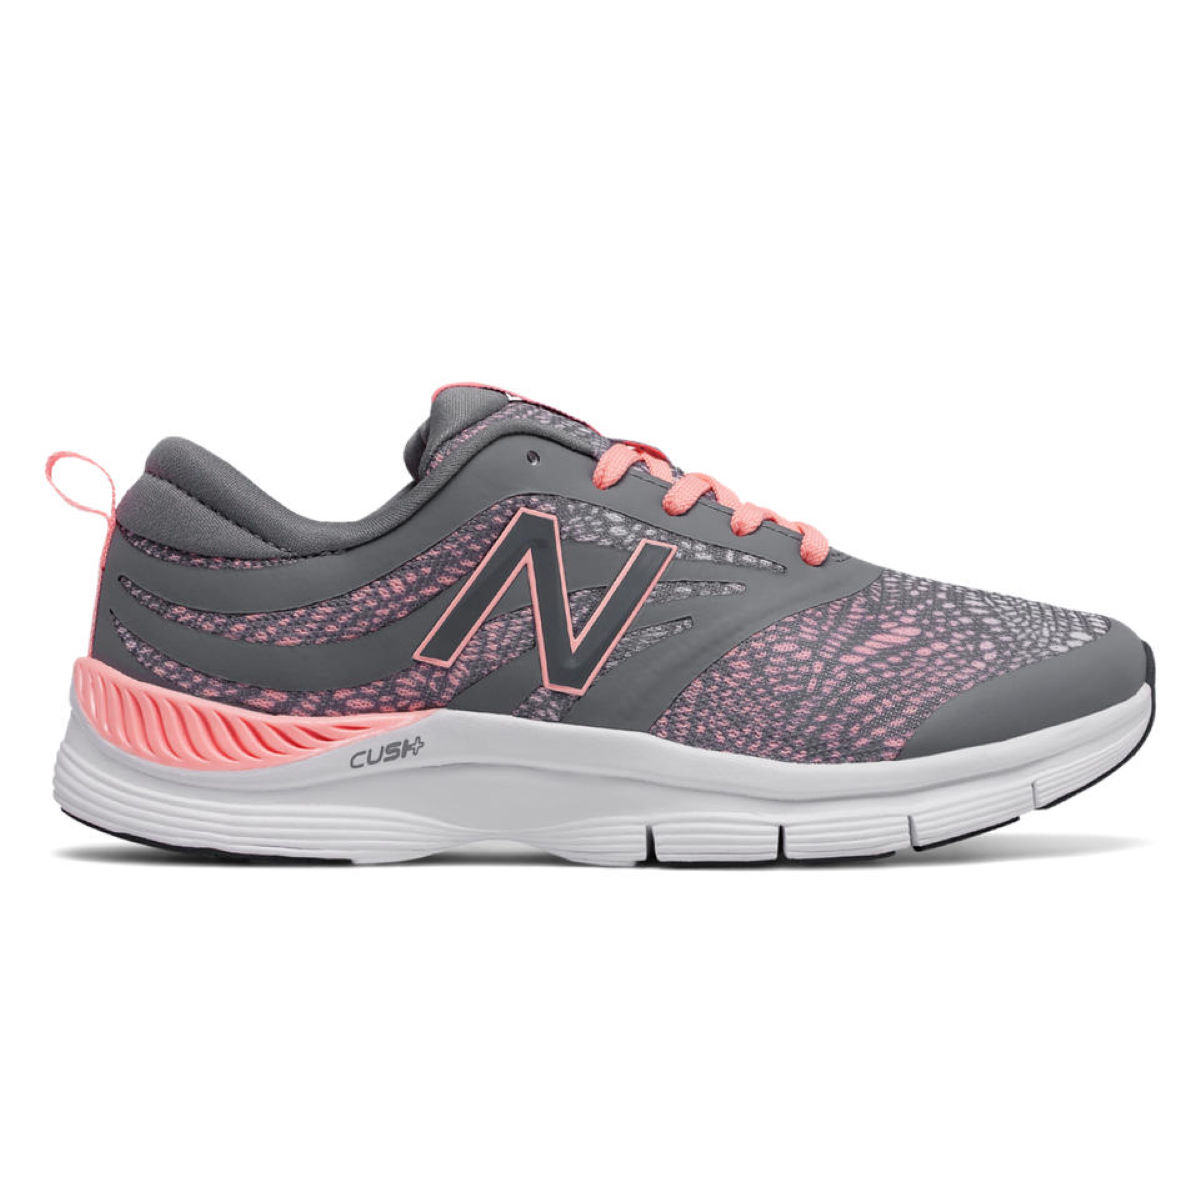 Chaussures Femme New Balance 713 - UK 6.5 Grey/Pink